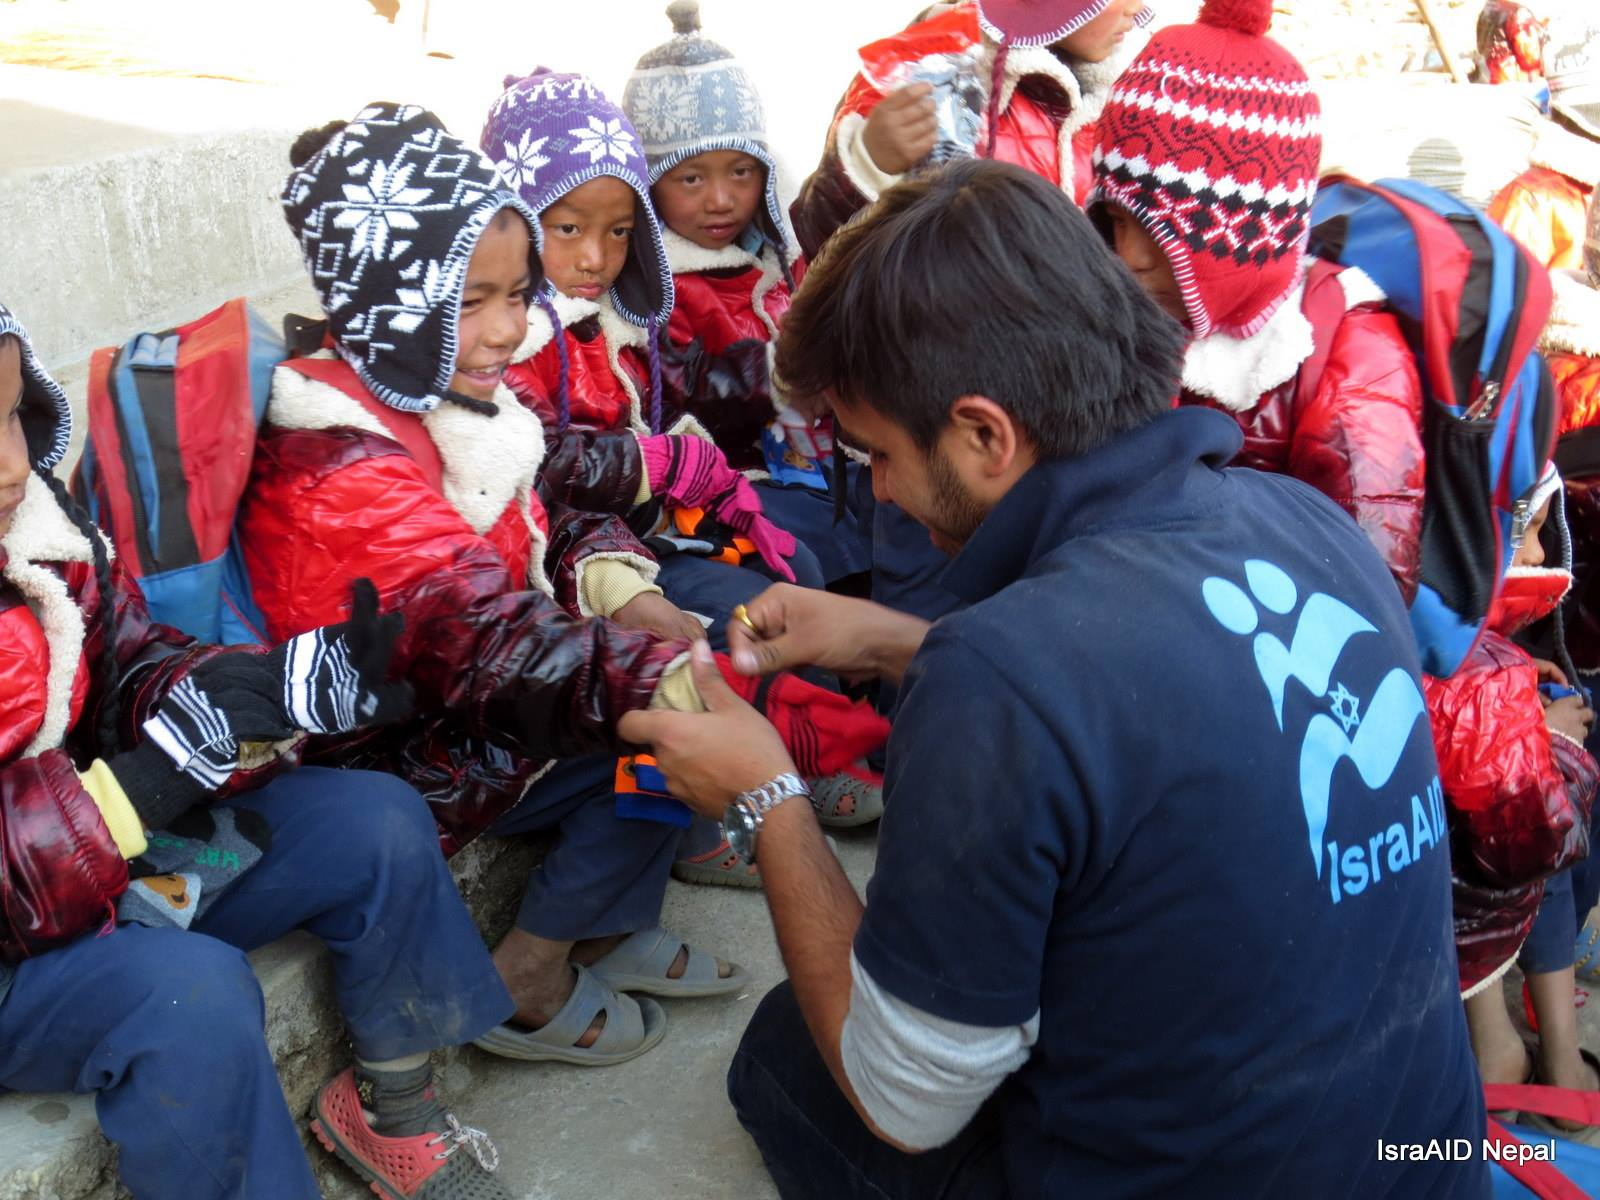 IsraAID and a partner NGO distributed warm clothing to 1,000 children in earthquake-affected communities of Nepal. Photo courtesy of IsraAID Nepal